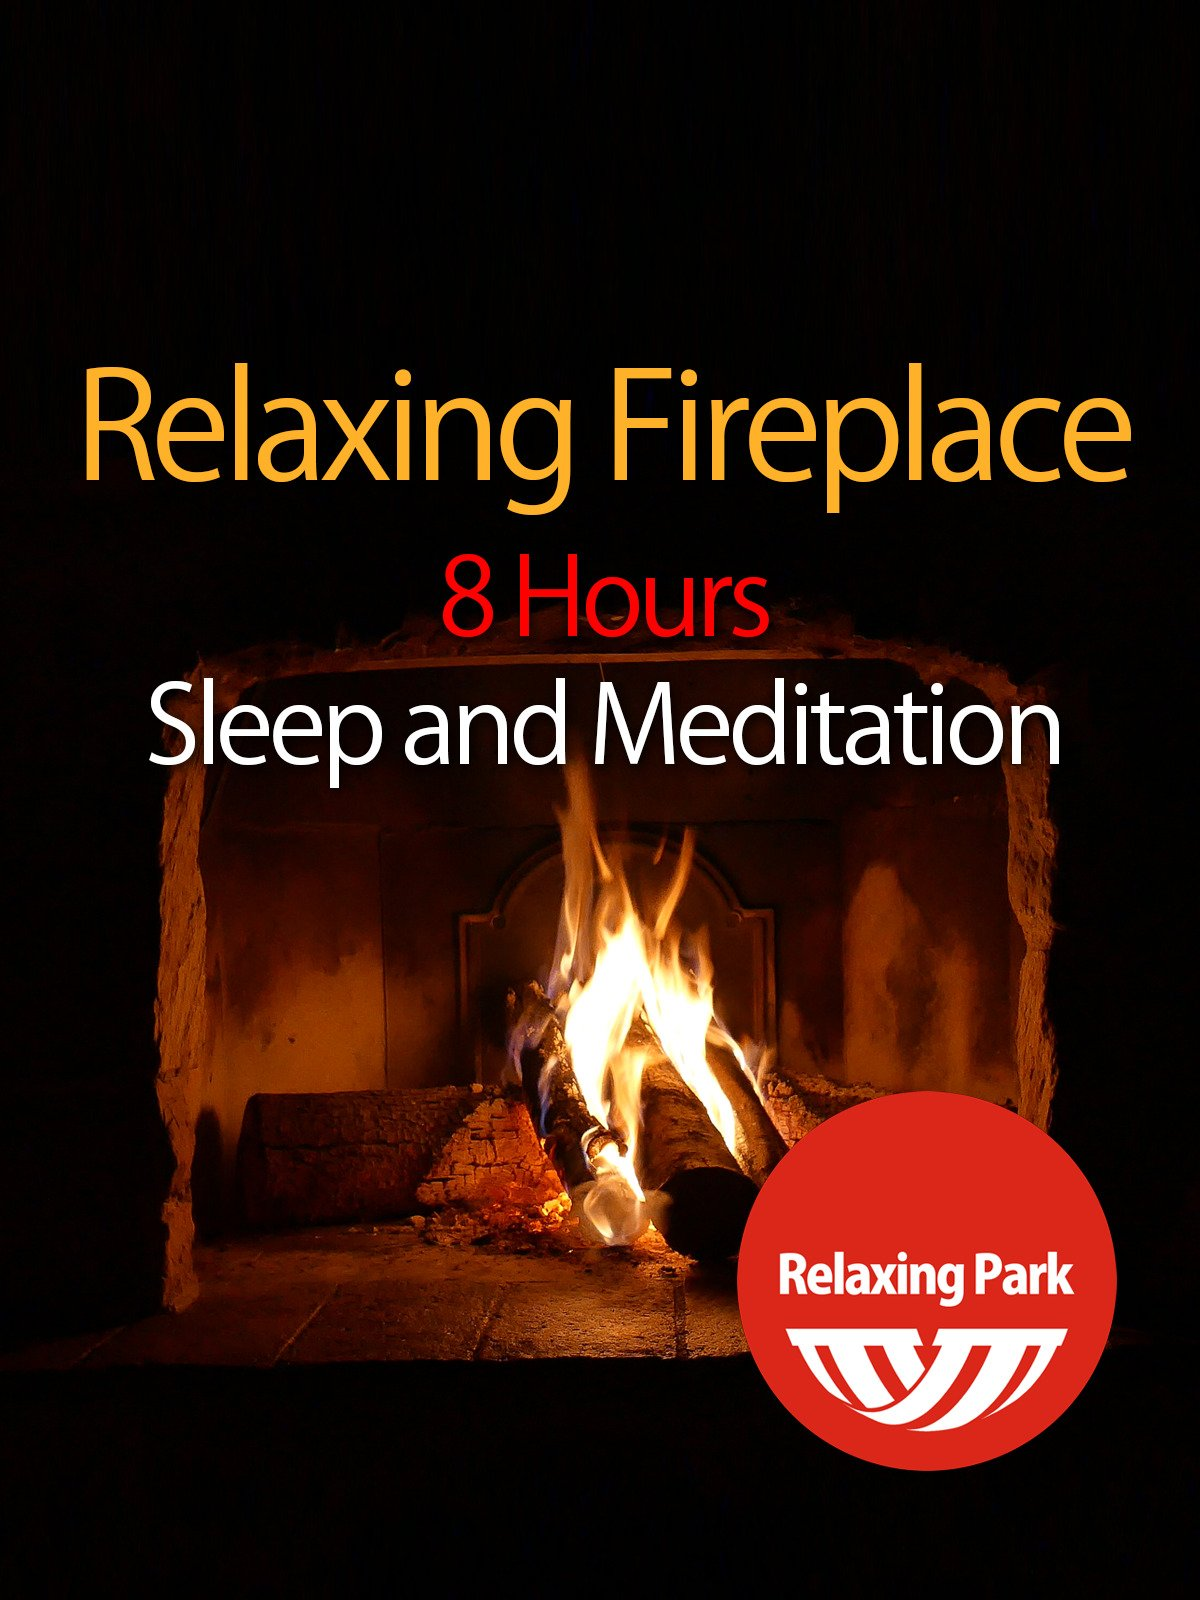 Relaxing Fireplace 8 Hours for Sleep and Meditation